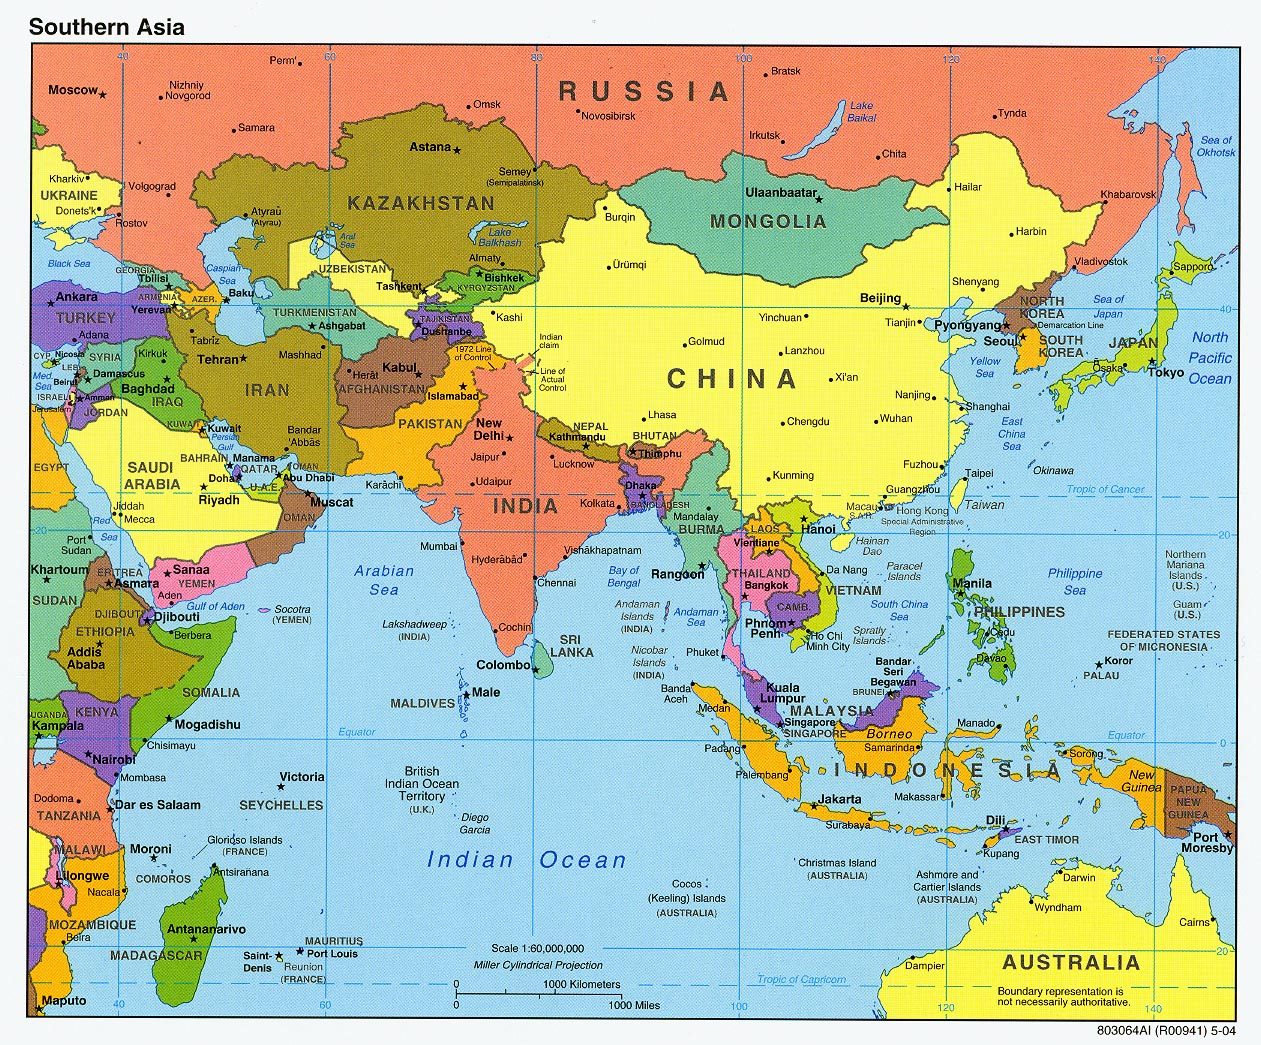 C1 Ana: Where is Afghanistan on the map? Afghanistan On Map on israel on map, yemen on map, iran on map, lebanon map, sudan on map, egypt on map, himalayas on map, congo on map, malaysia on map, north korea on map, mongolia on map, bangladesh on map, bhutan on map, indonesia on map, pakistan on map, thailand on map, nepal on map, armenia on map, the arabian sea on map, kuwait on map,